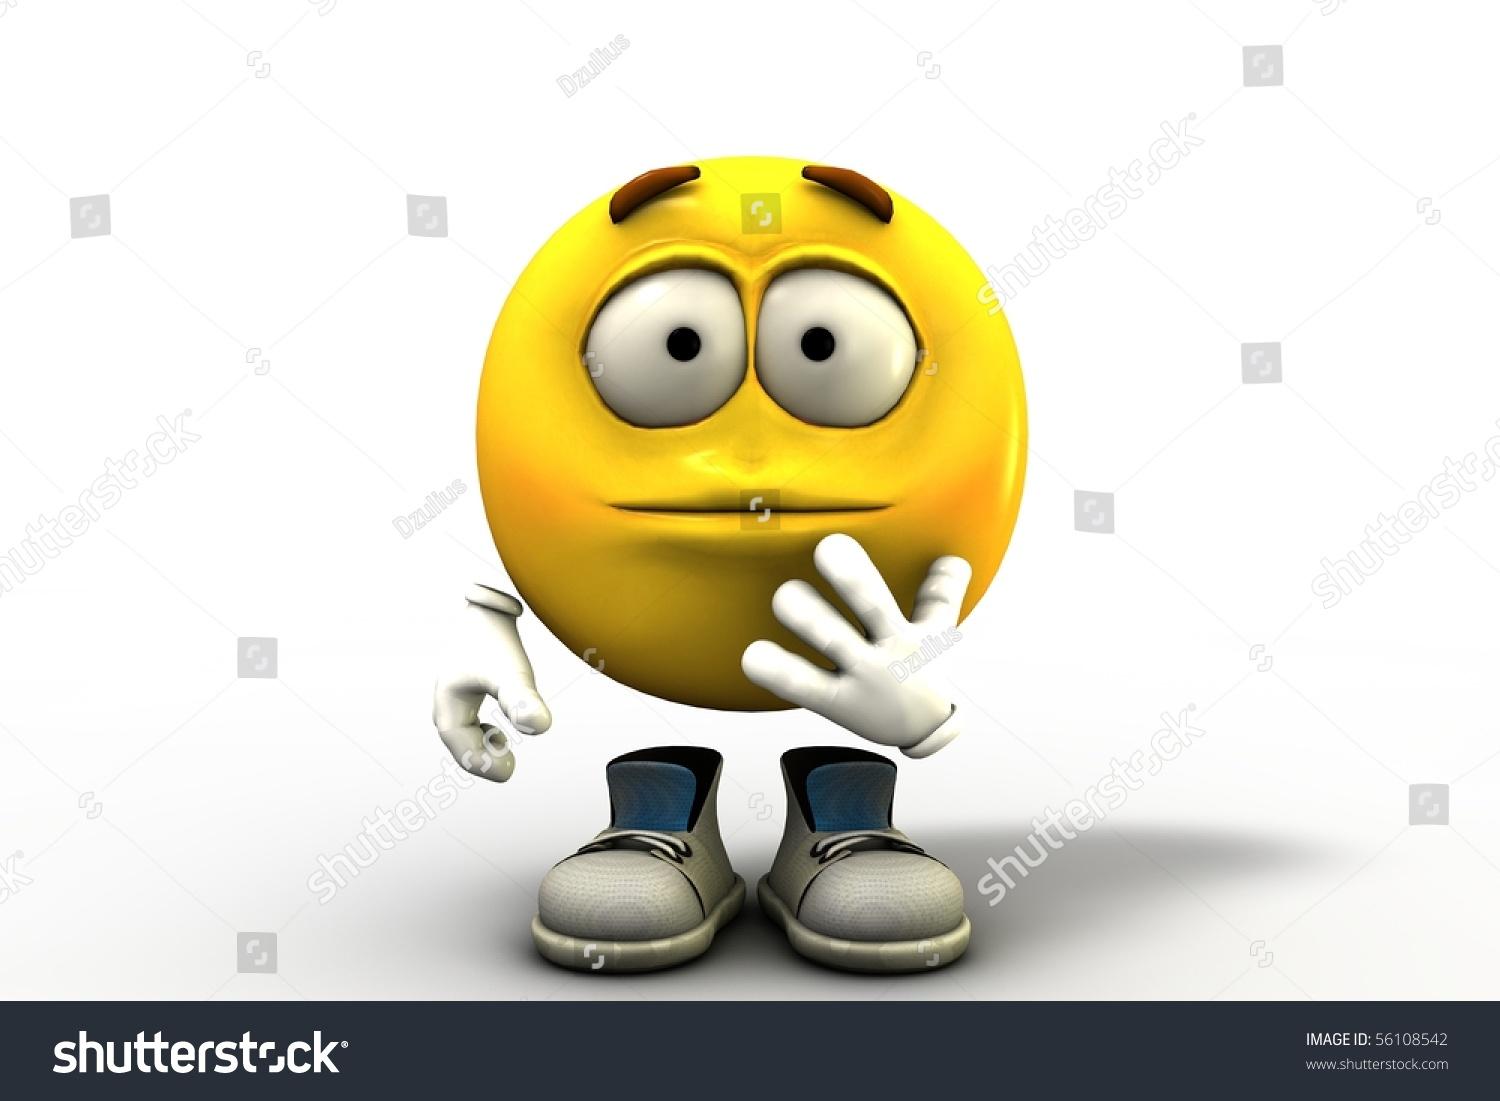 disappointed emoticon stock illustration 56108542